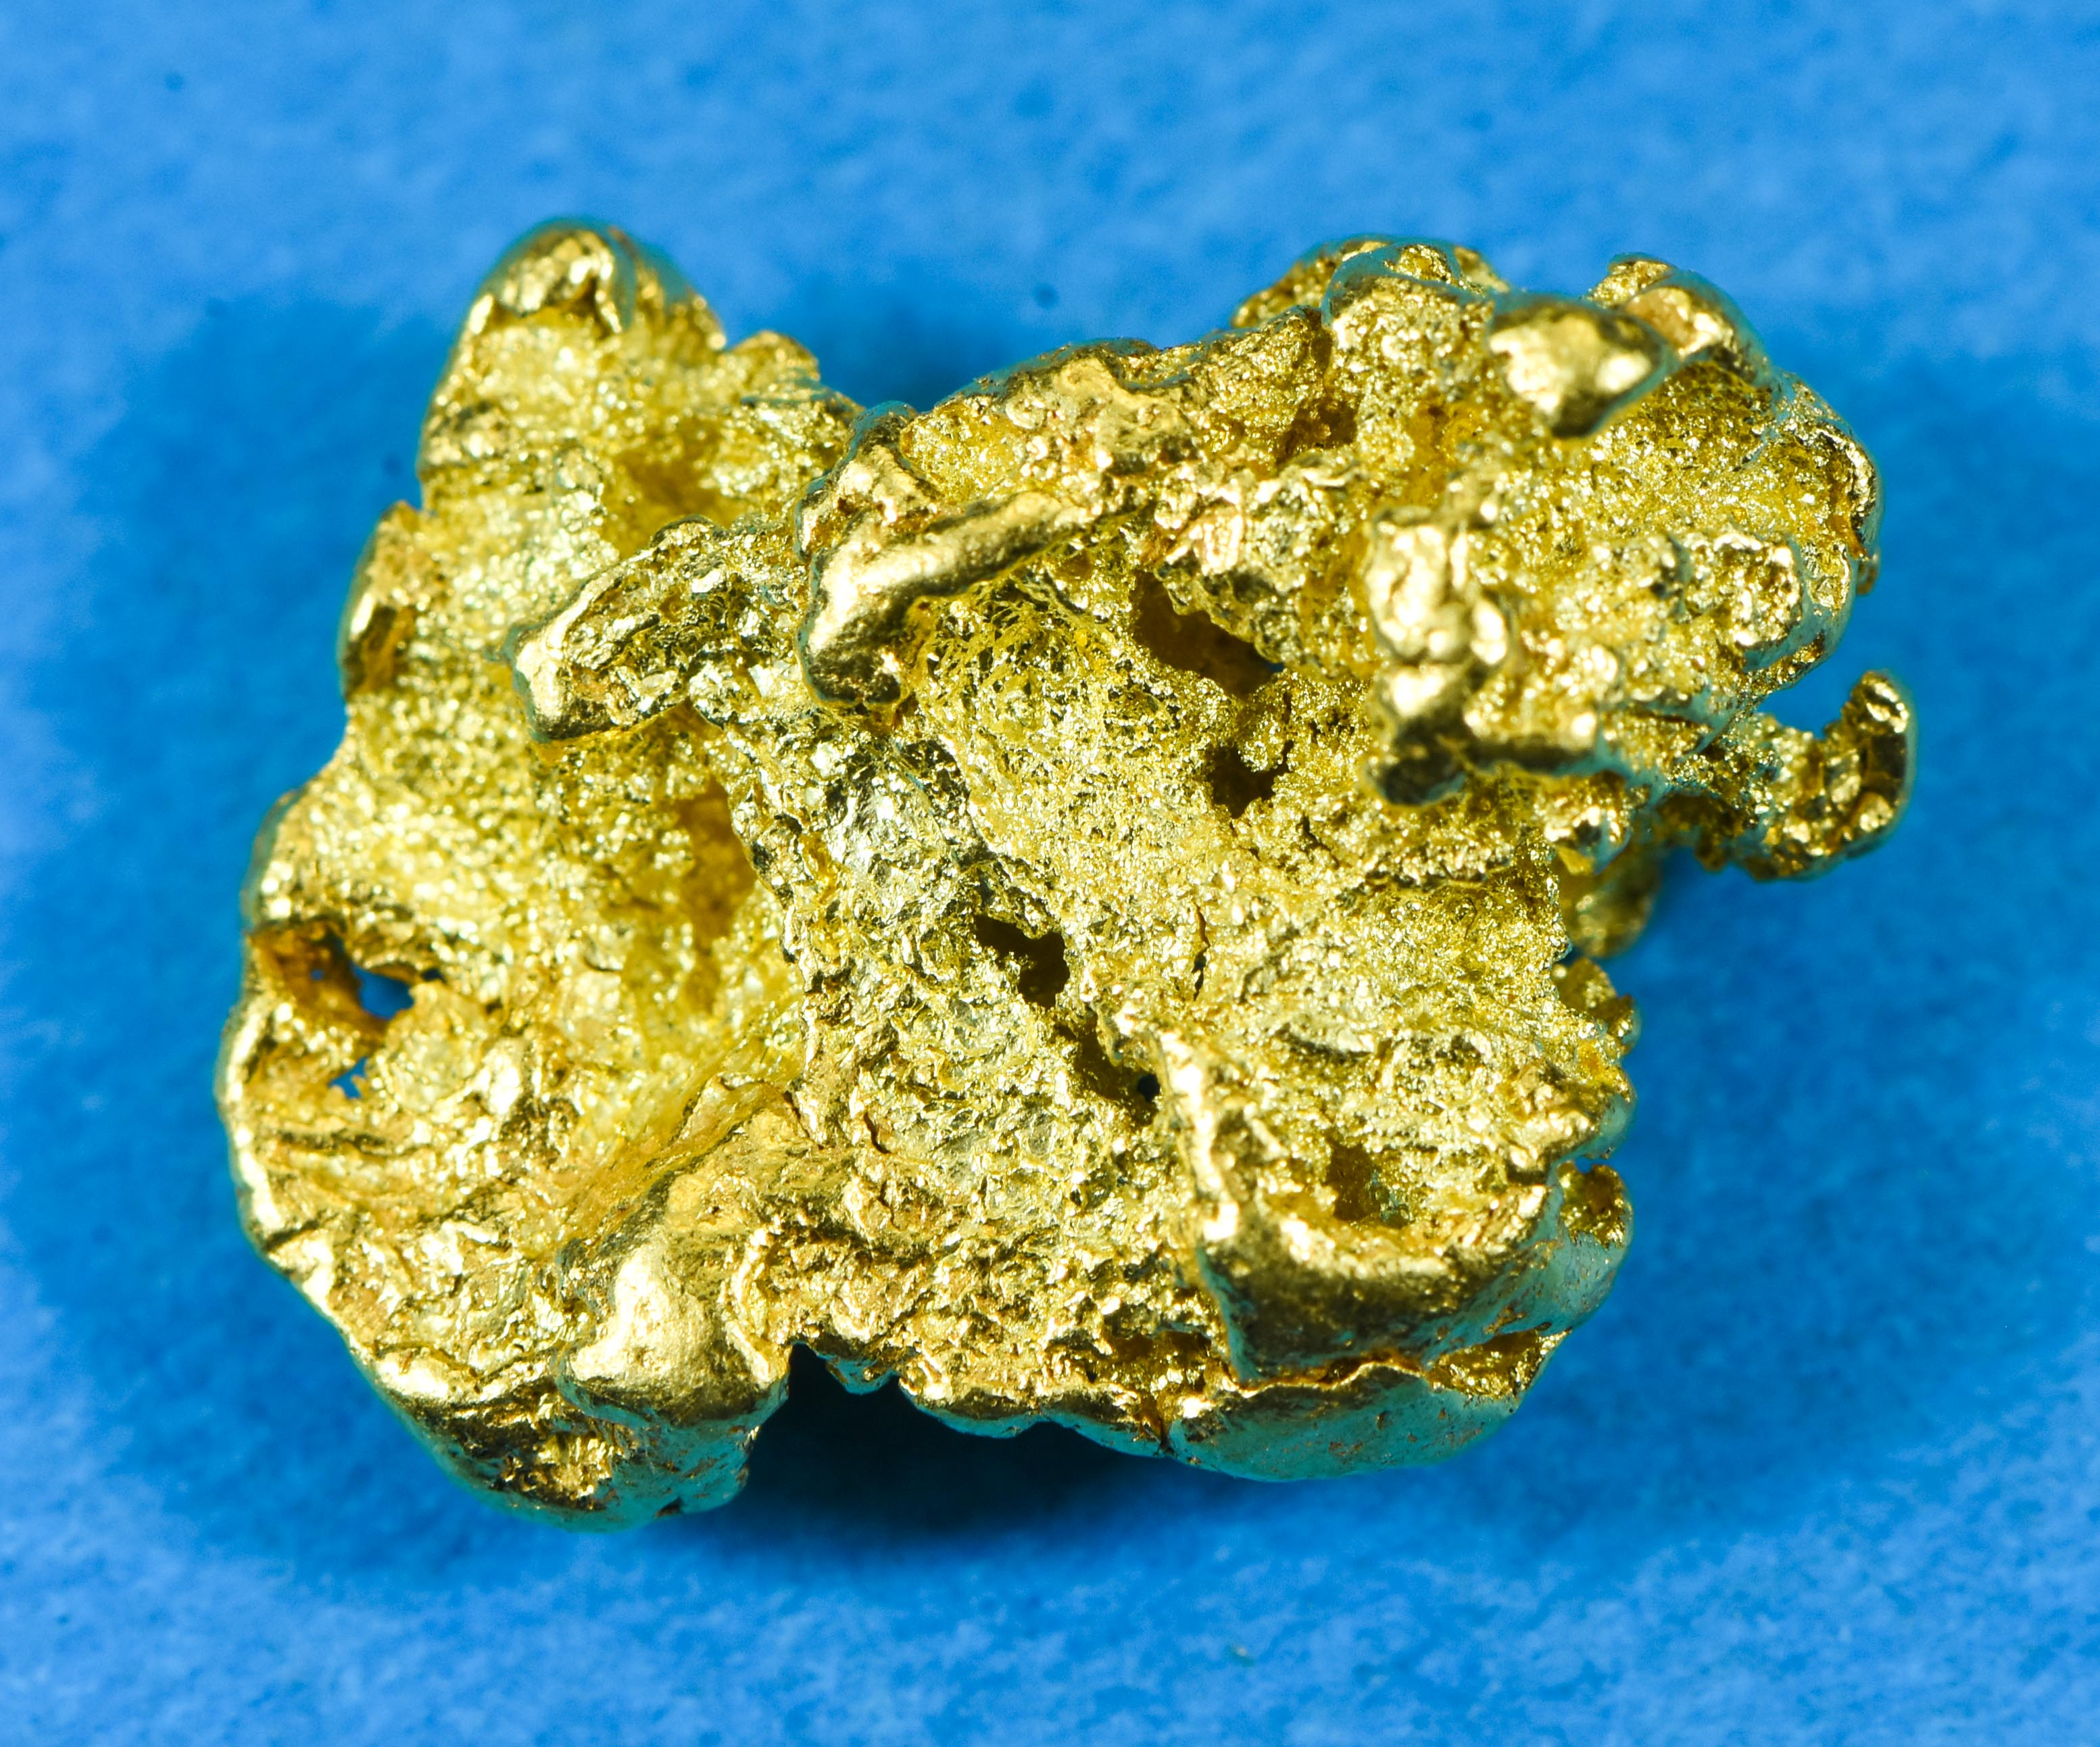 #203 Alaskan BC Natural Gold Nugget 2.66 Grams Genuine